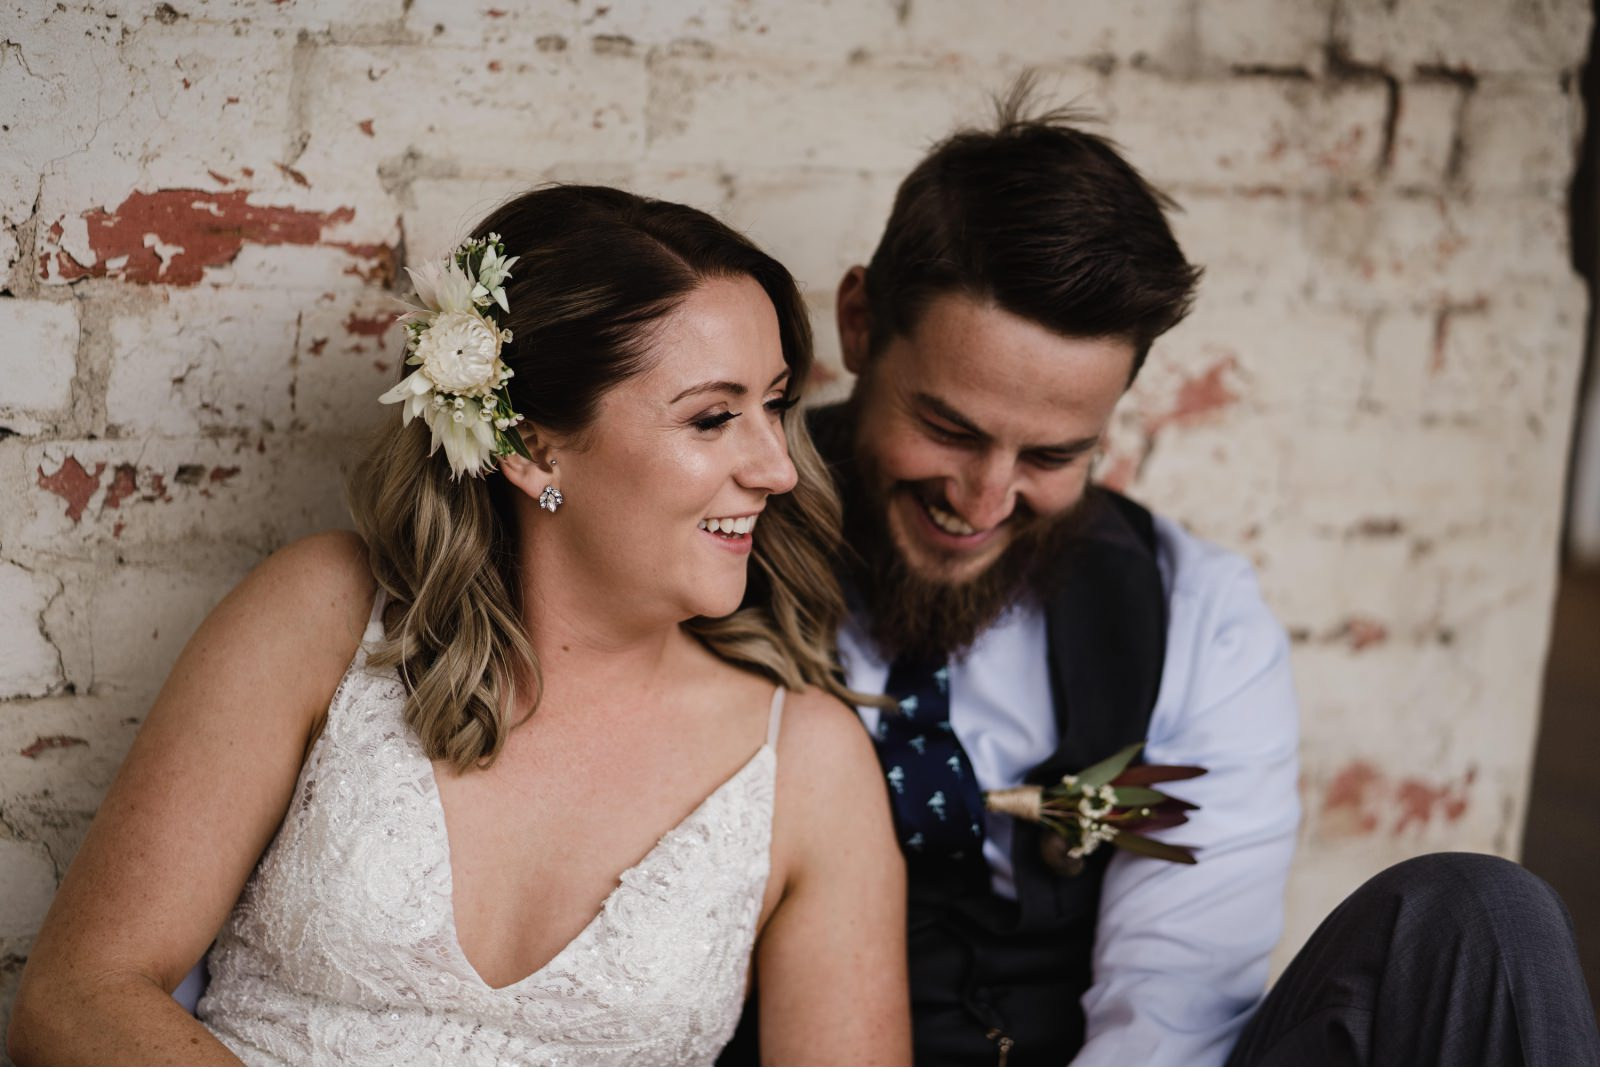 scone-wedding-photographer-upper-hunter-valley-41